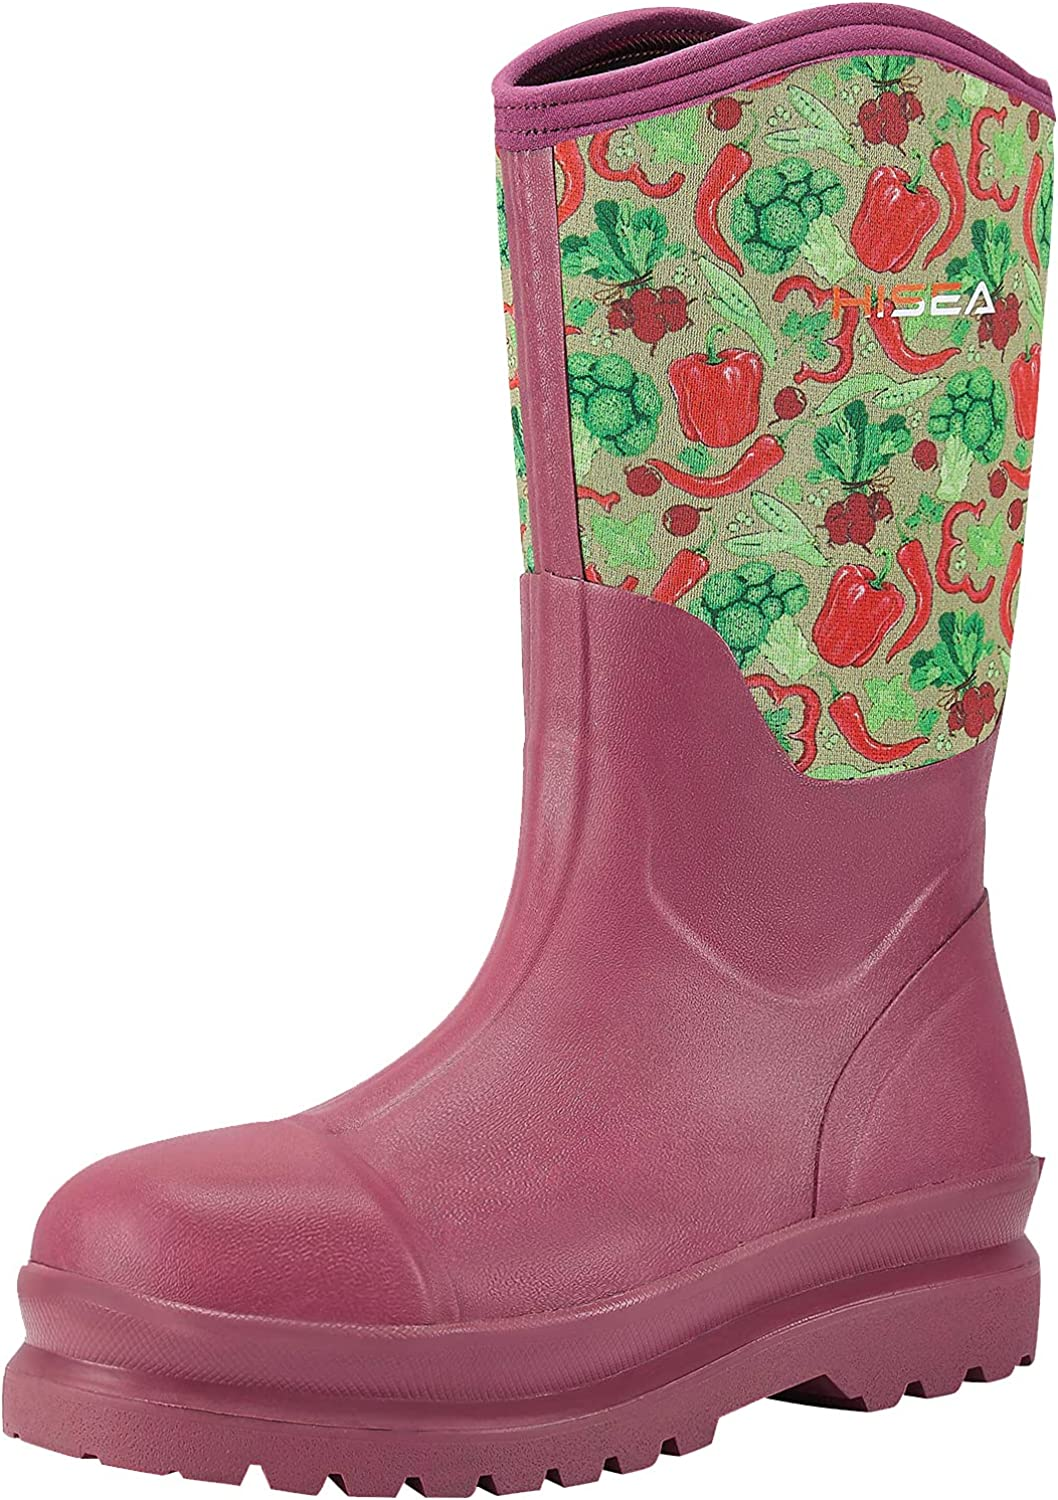 HISEA Women's Rubber Work Boots Mid Calf Rain Boots Insulated for Outdoor Muck Mud Riding Fishing Working